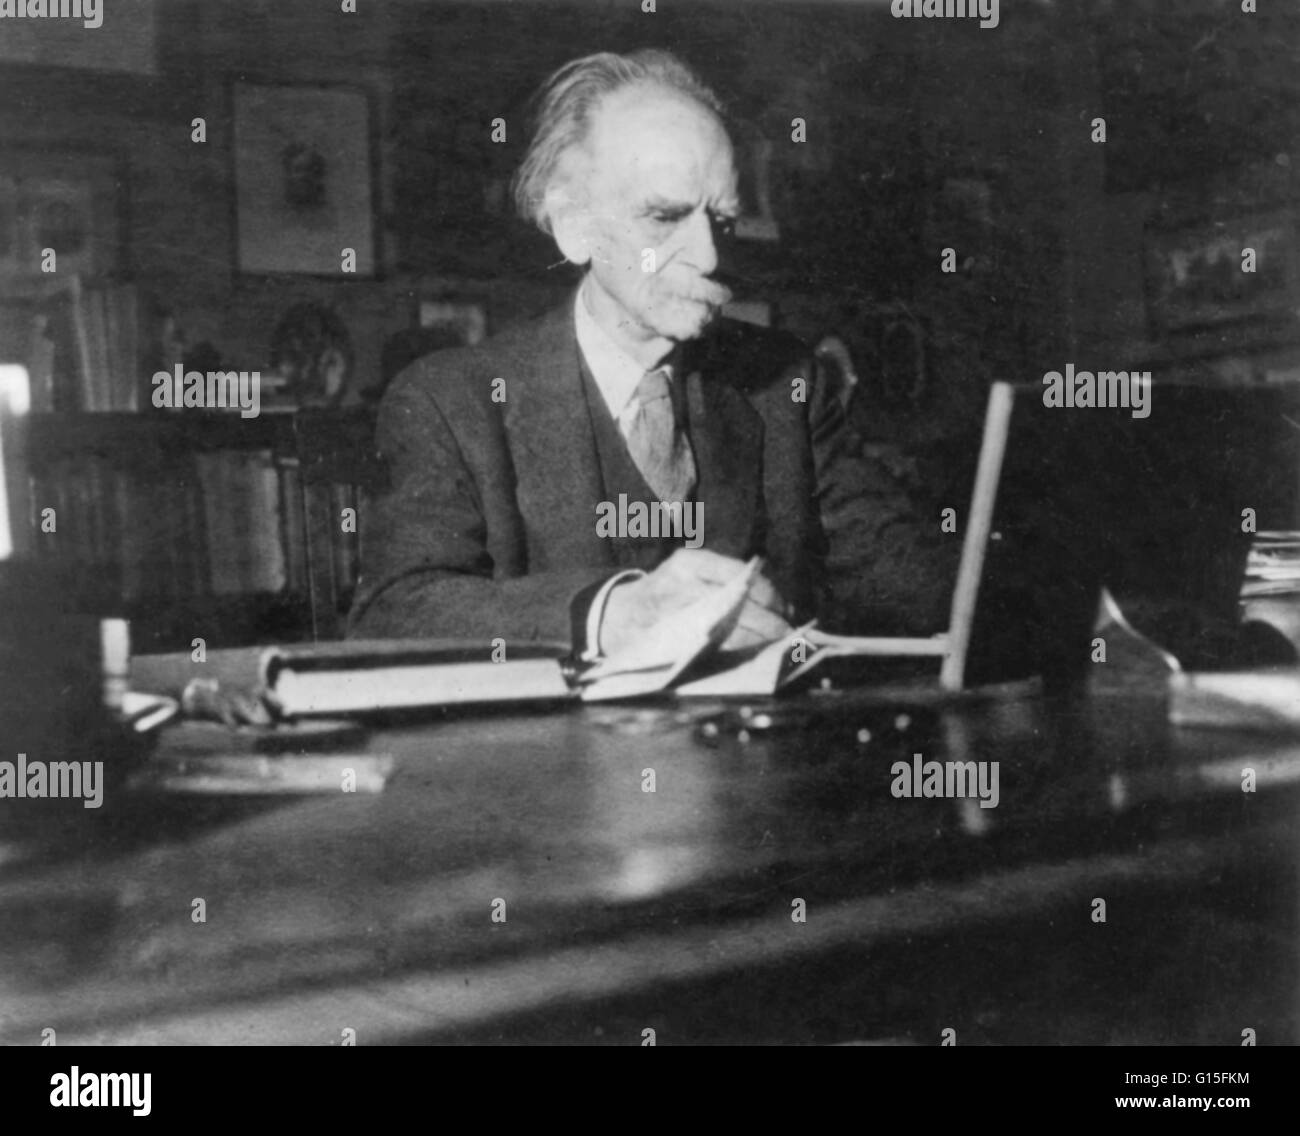 """Franz Boas (1858-1942) was a German-American anthropologist and a pioneer of modern anthropology who has been called the """"Father of American Anthropology"""" and """"the Father of Modern Anthropology."""" Like many such pioneers, he trained in other disciplines; h Stock Photo"""